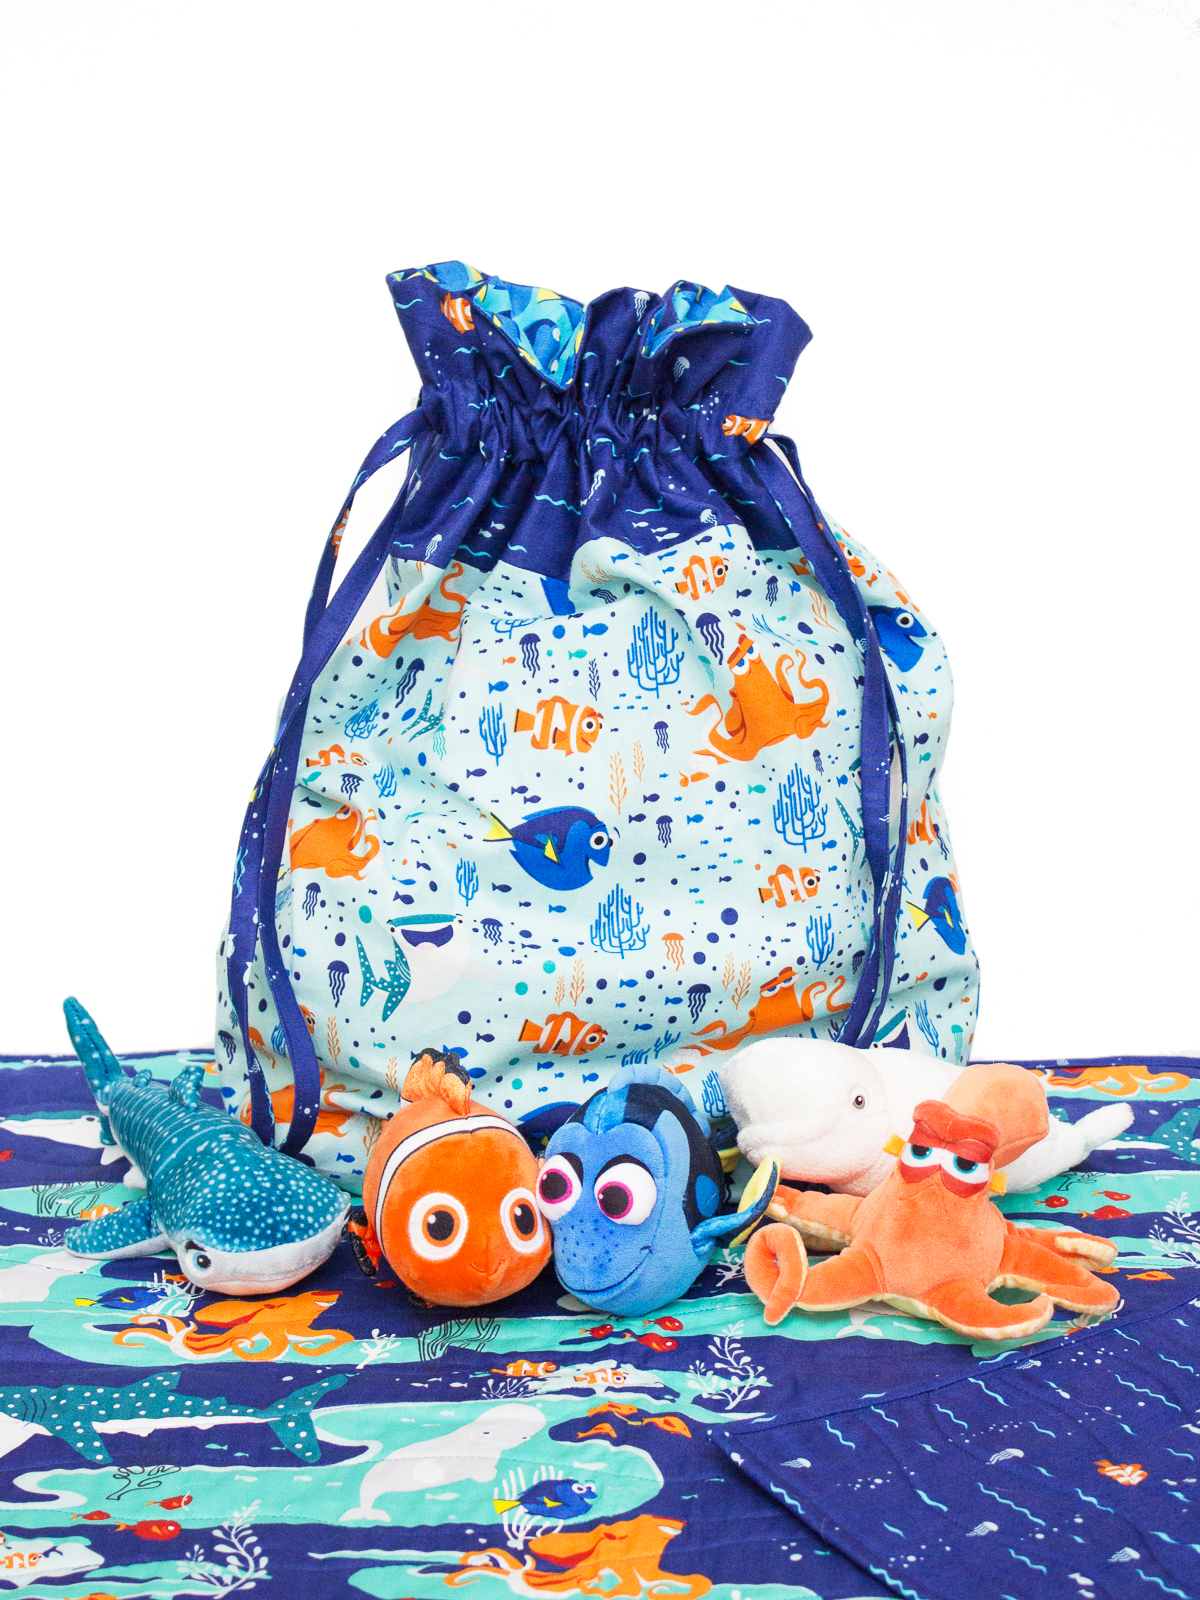 FINDING DORY TOY BAG AND QUILTED PLAY MAT Bag pattern by In Color Order, Whole Cloth Quilted Play Mat